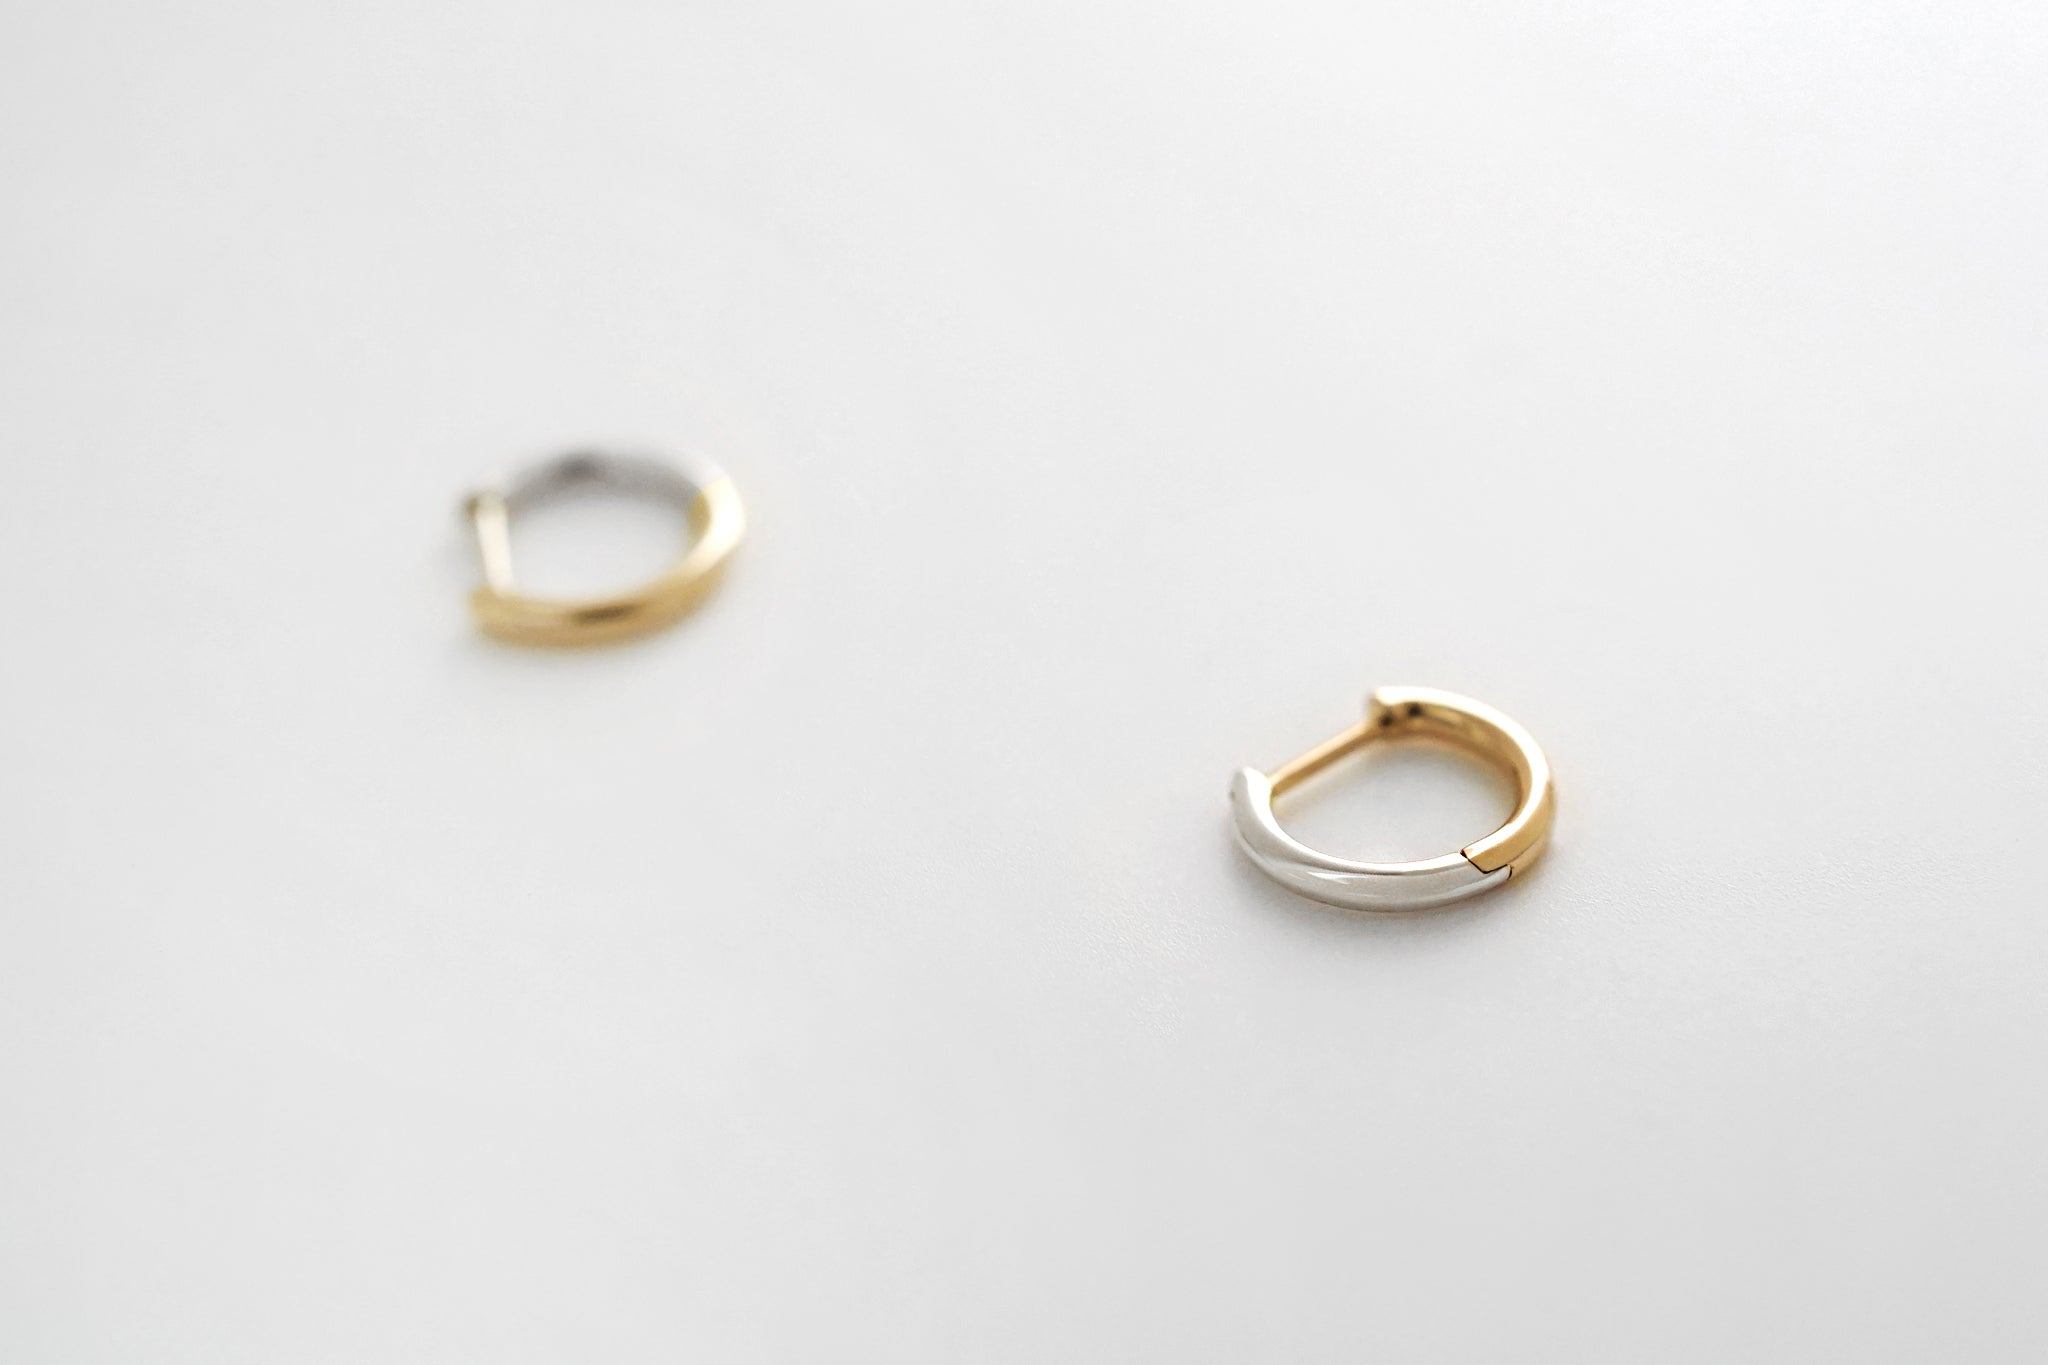 Two Tone Hoop Earrings - Yellow/White Gold